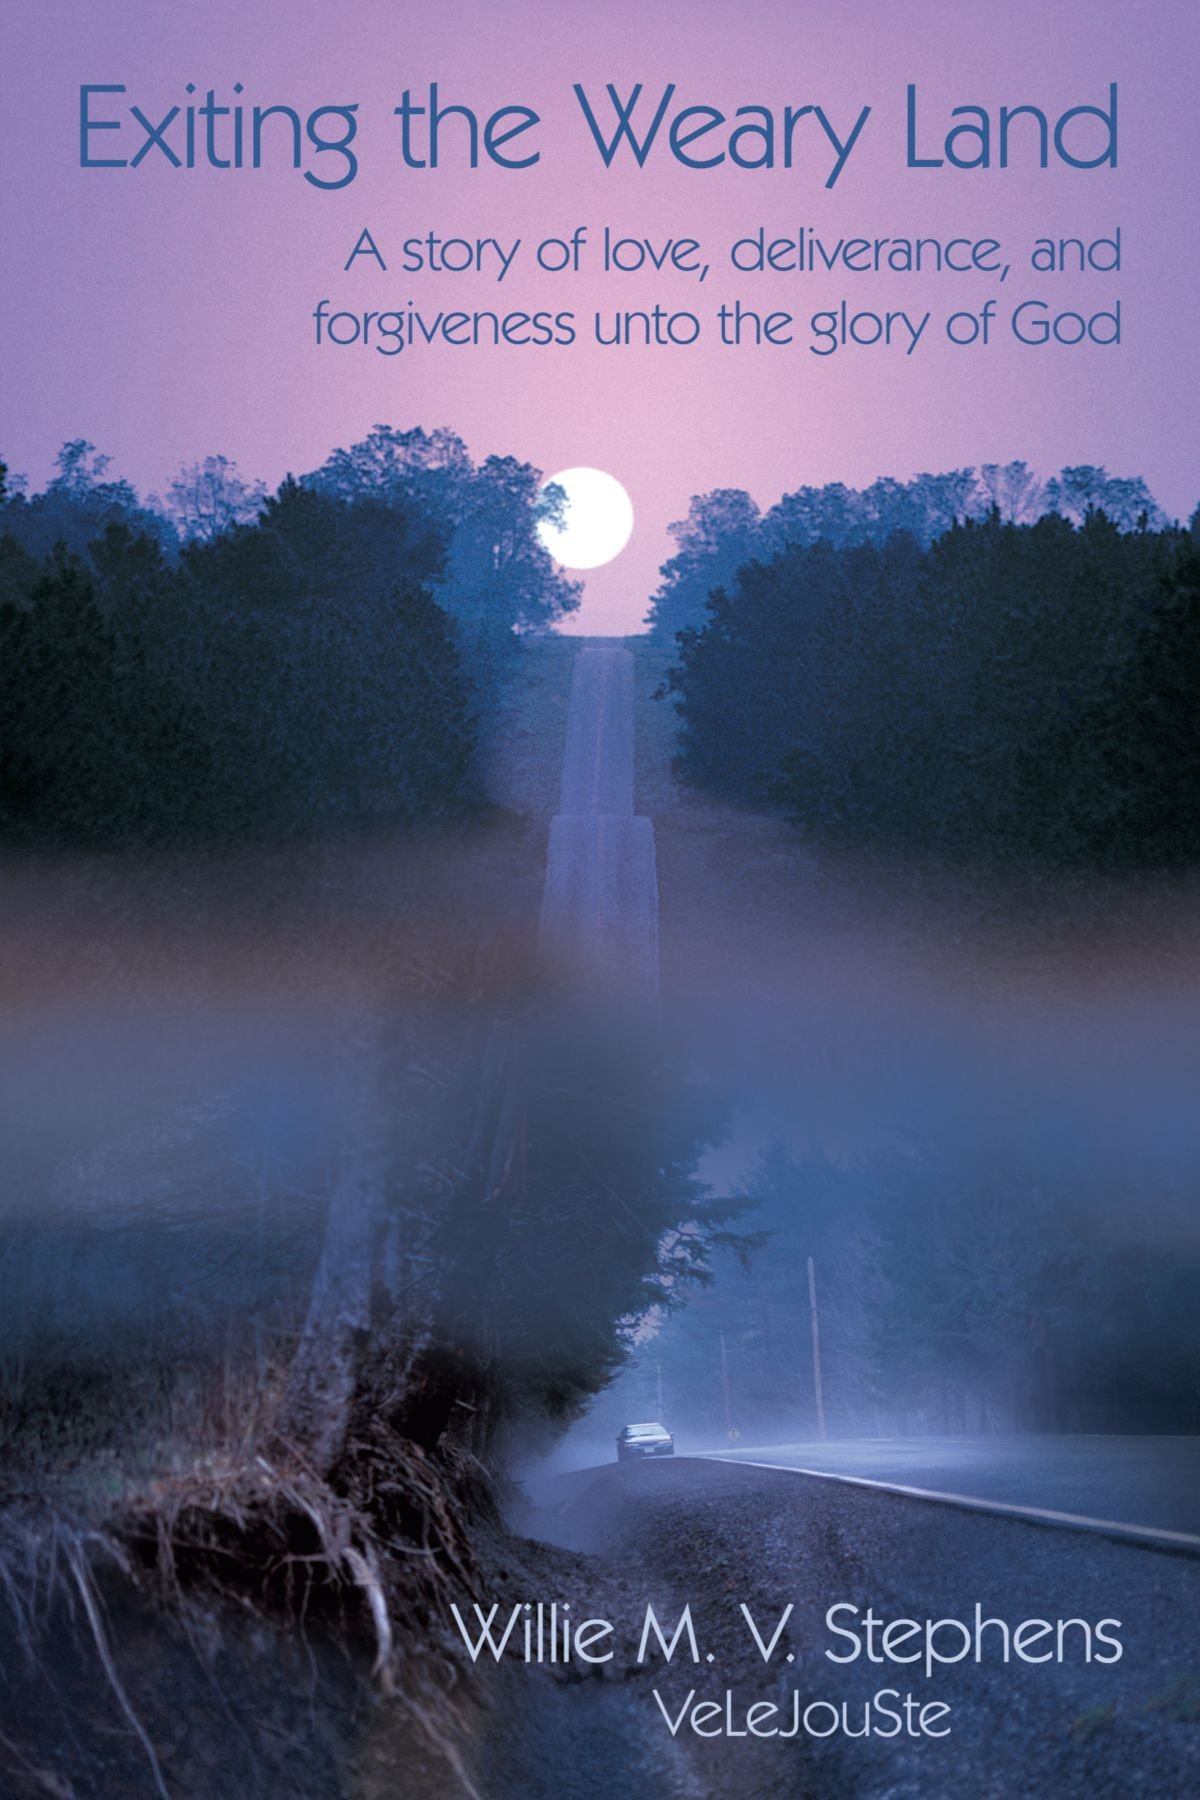 Download Exiting the Weary Land: A story of love, deliverance, and forgiveness unto the glory of God PDF